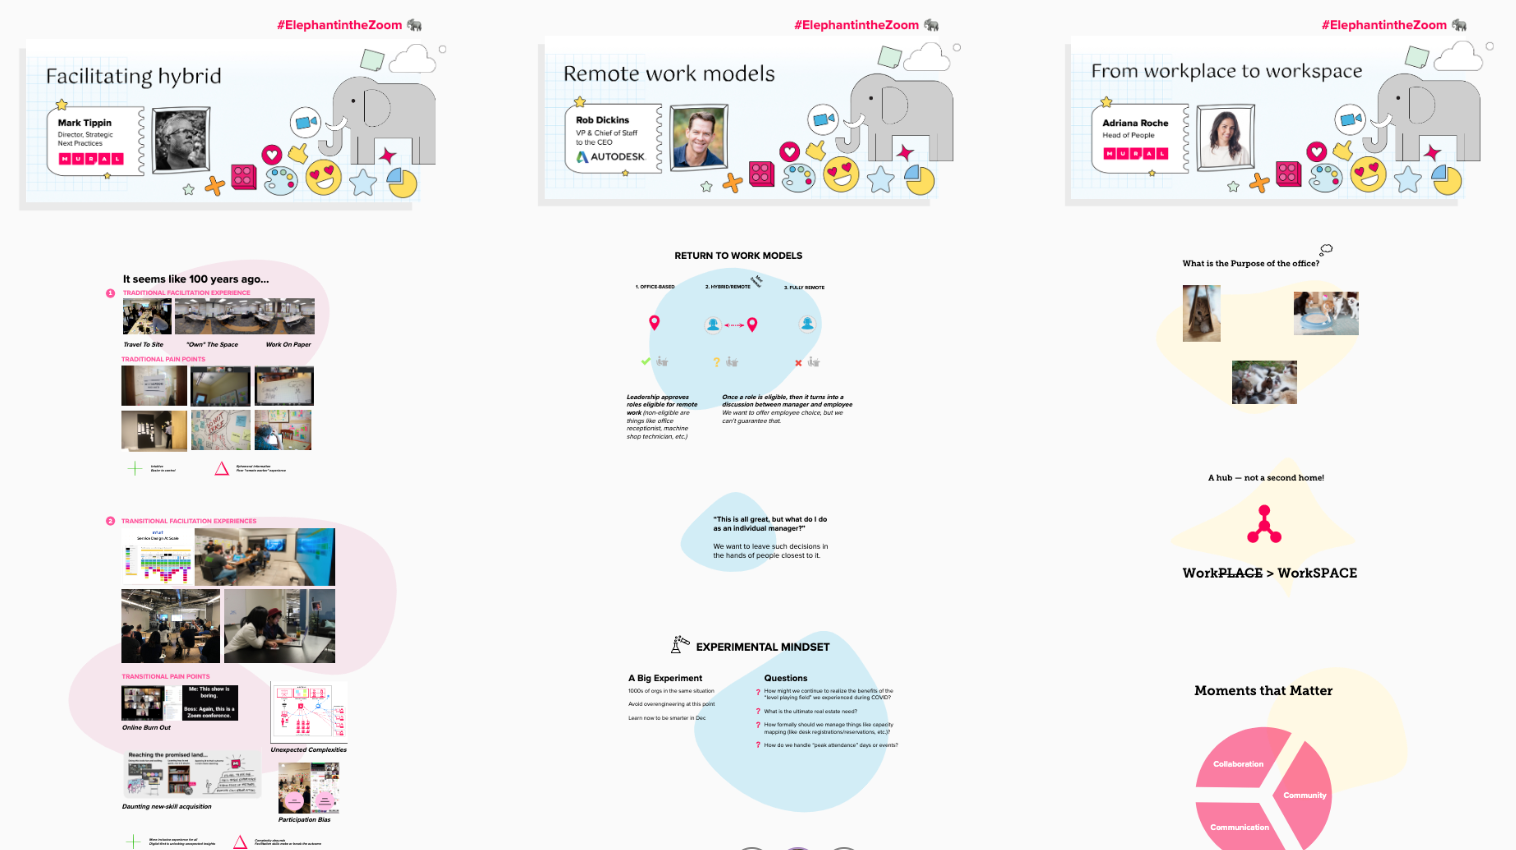 Visual of the presentation mural — Facilitating Hybrid, remote work models, from workplace to workspace